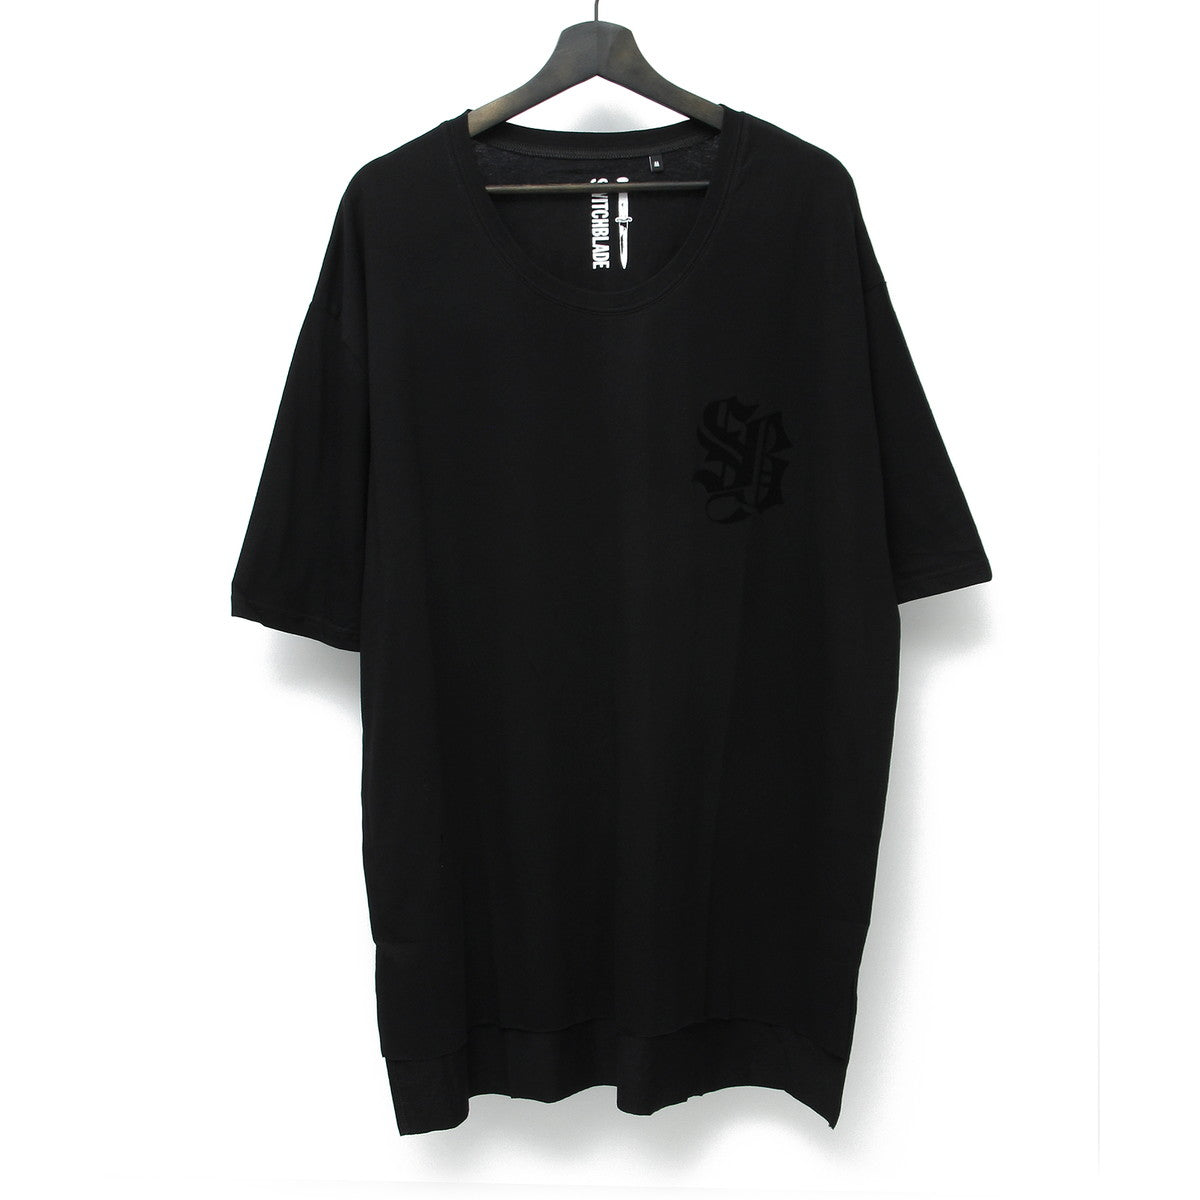 SWITCHBLADE LIGHT SHINE TEE / BLACK